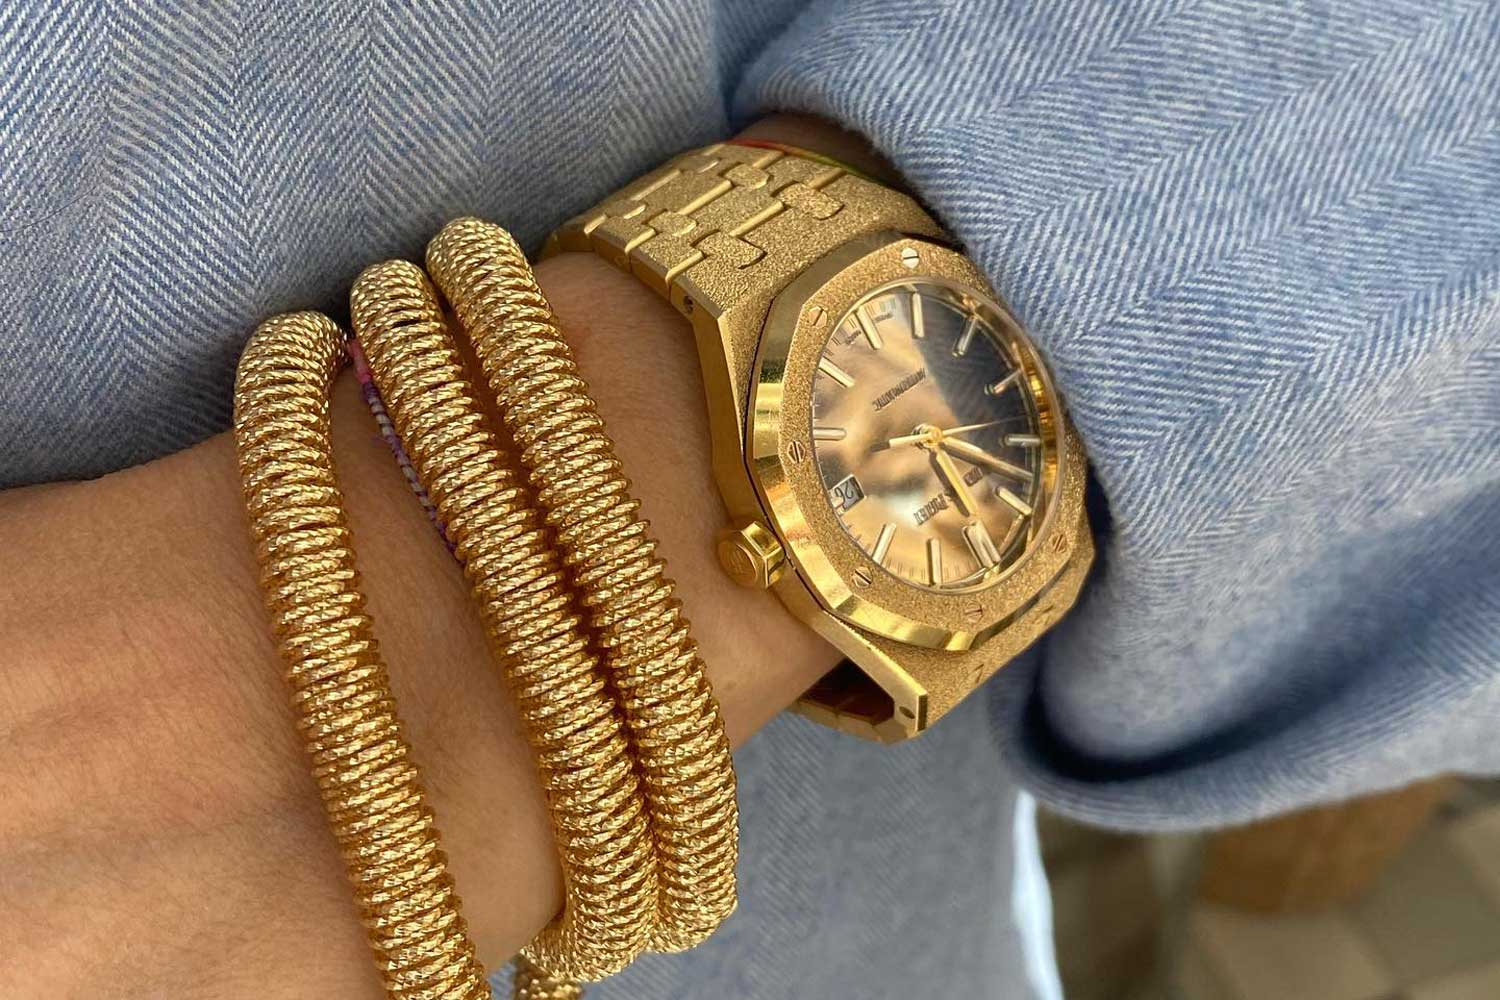 One of the modern watches that J.J. covets the most right now is the Audemars Piguet Royal Oak Frosted Gold Carolina Bucci Limited Edition